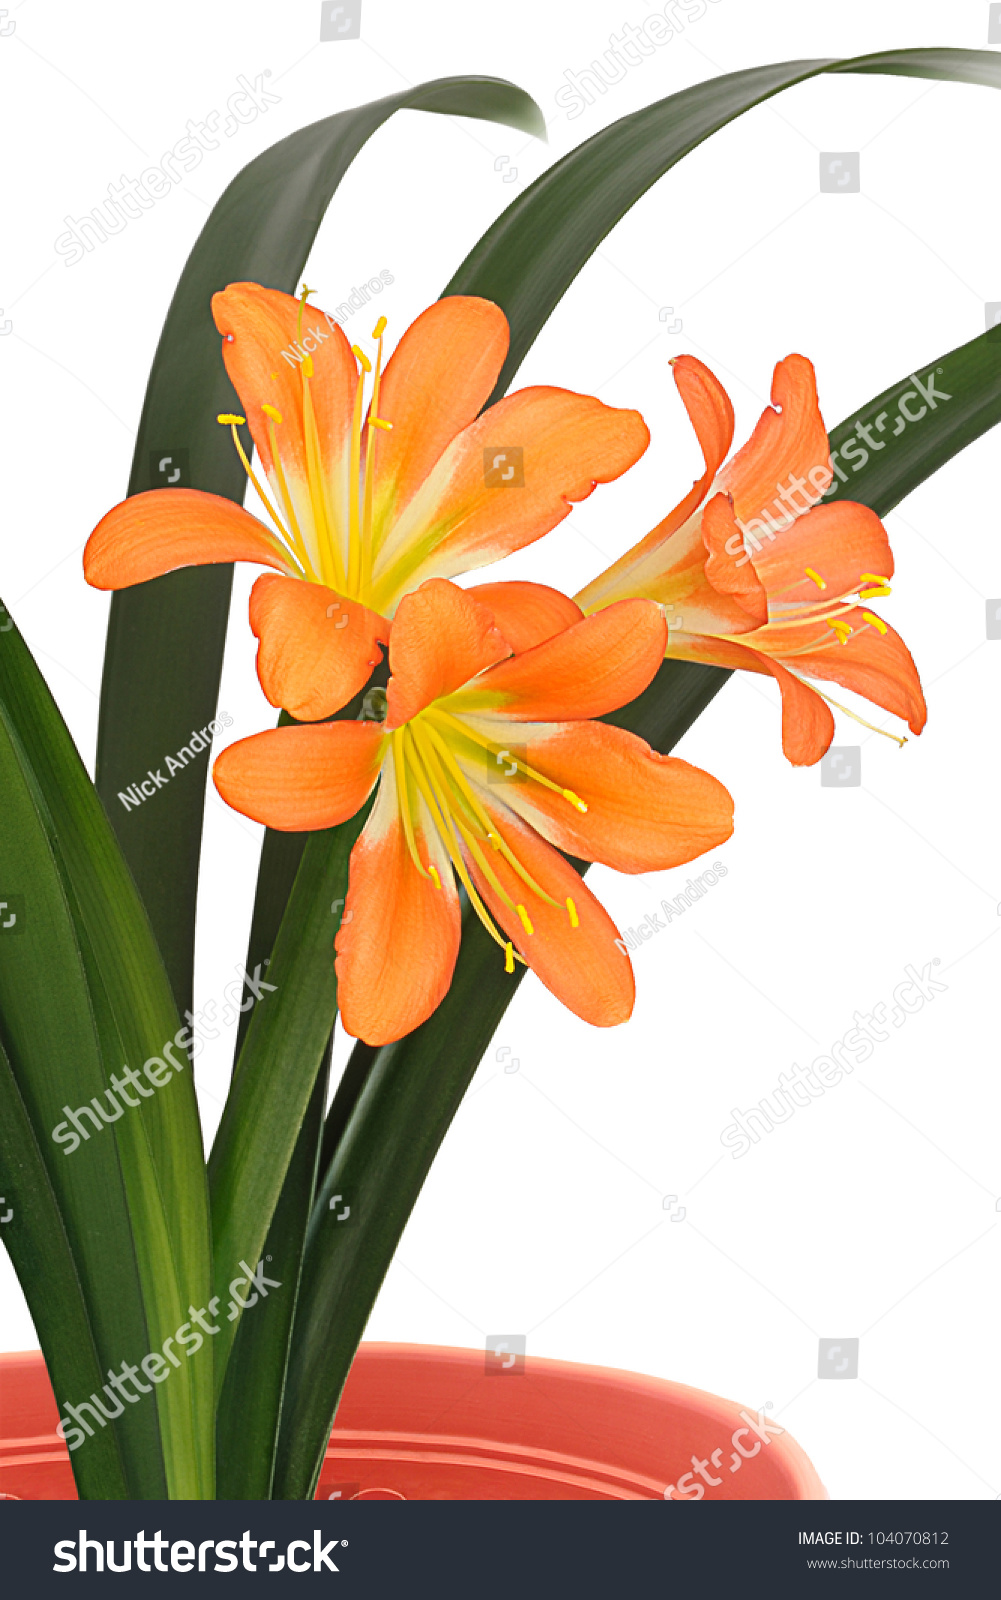 Three orange color flowers lily clivia stock photo royalty free three orange color flowers of lily of clivia kind with green leaves in flowerpot isolated on izmirmasajfo